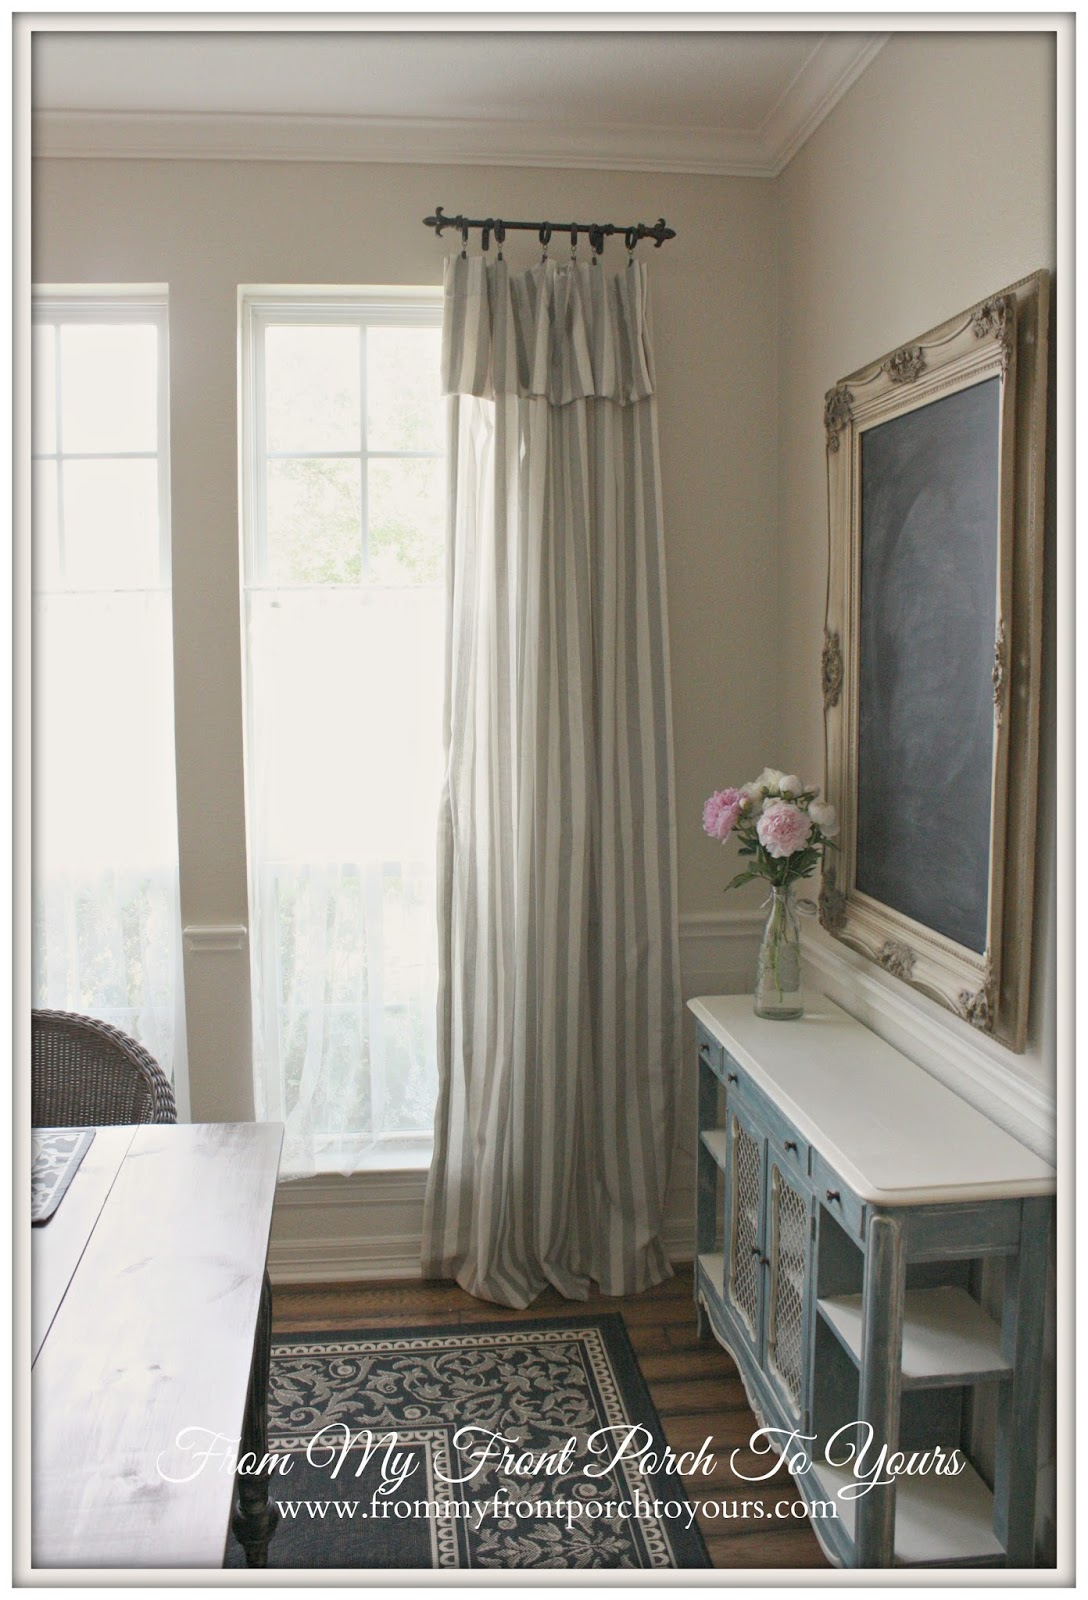 From My Front Porch To Yours- New Dining Room Curtains